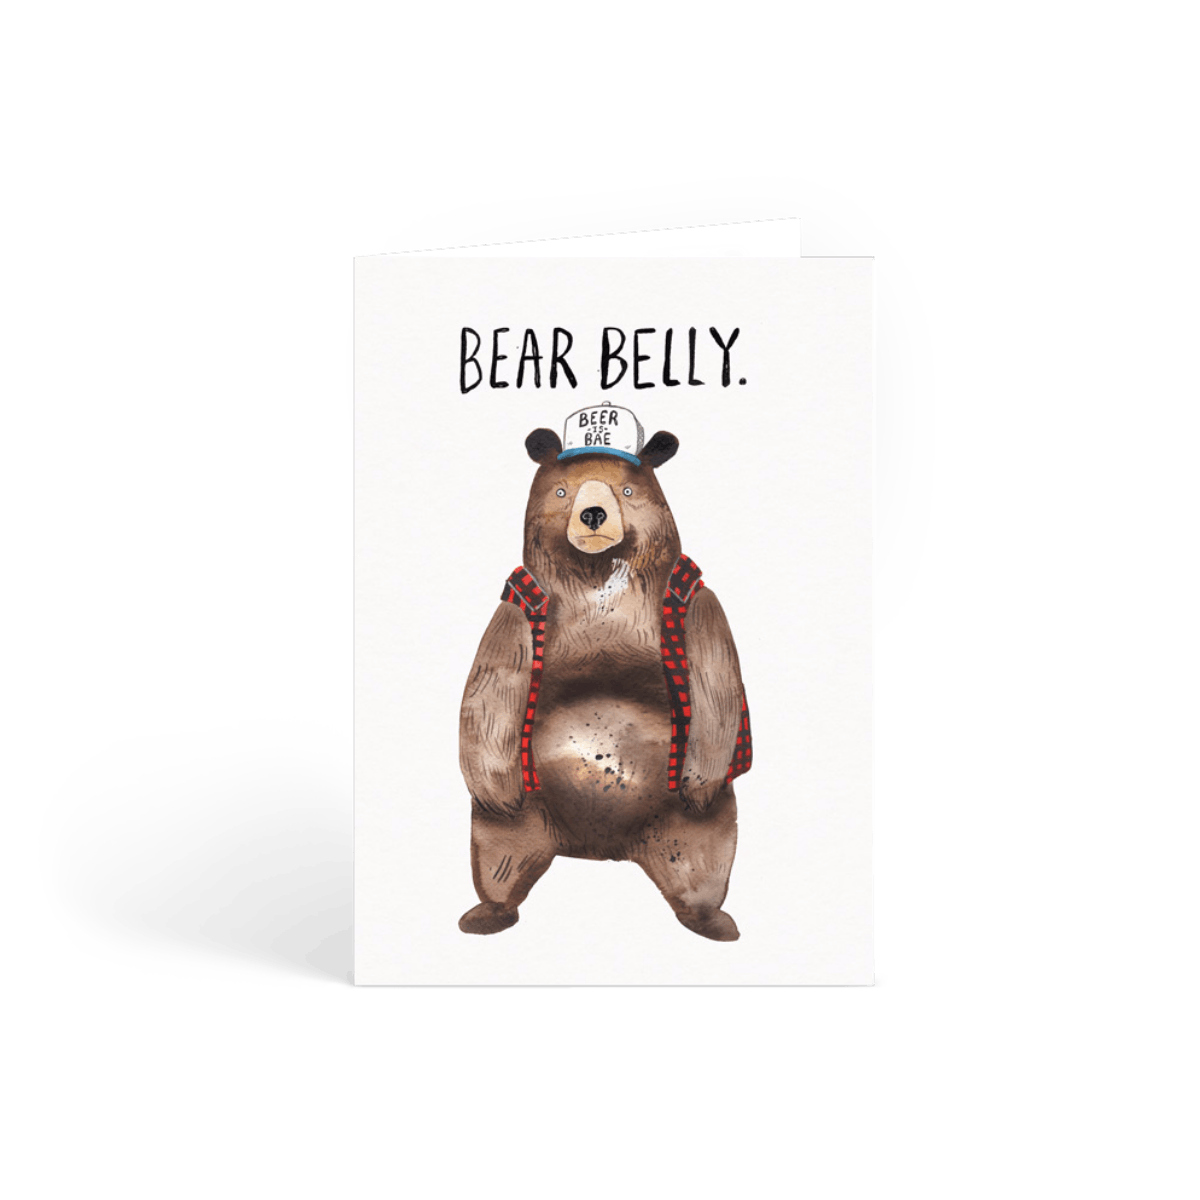 Https%3a%2f%2fwww.papier.com%2fproduct image%2f24003%2f2%2fbear belly 6005 front 1497623281.png?ixlib=rb 1.1